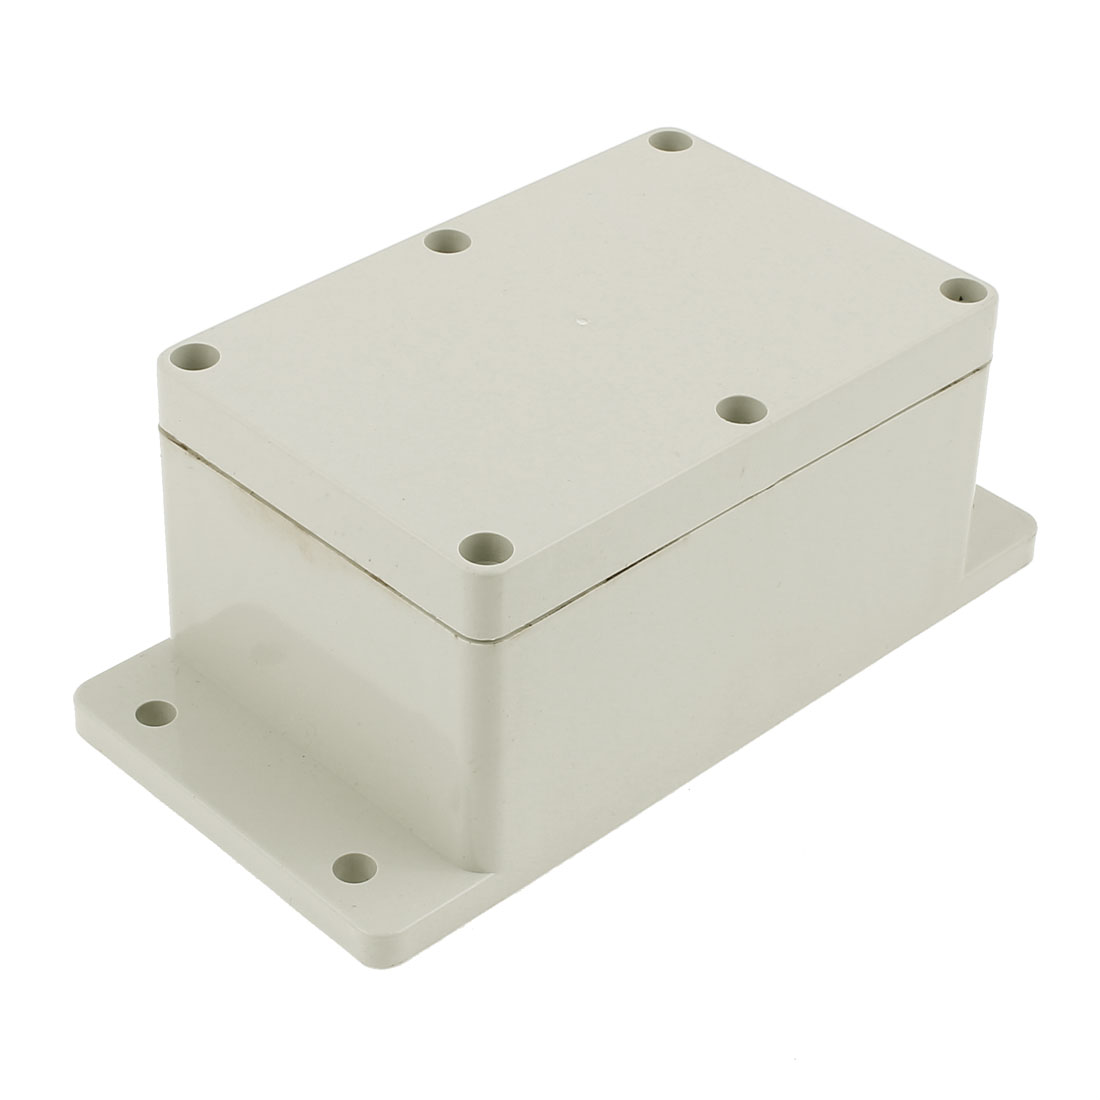 162 x 81 x 65mm Dustproof IP65 Junction Box Terminal Connecting Box Enclosure